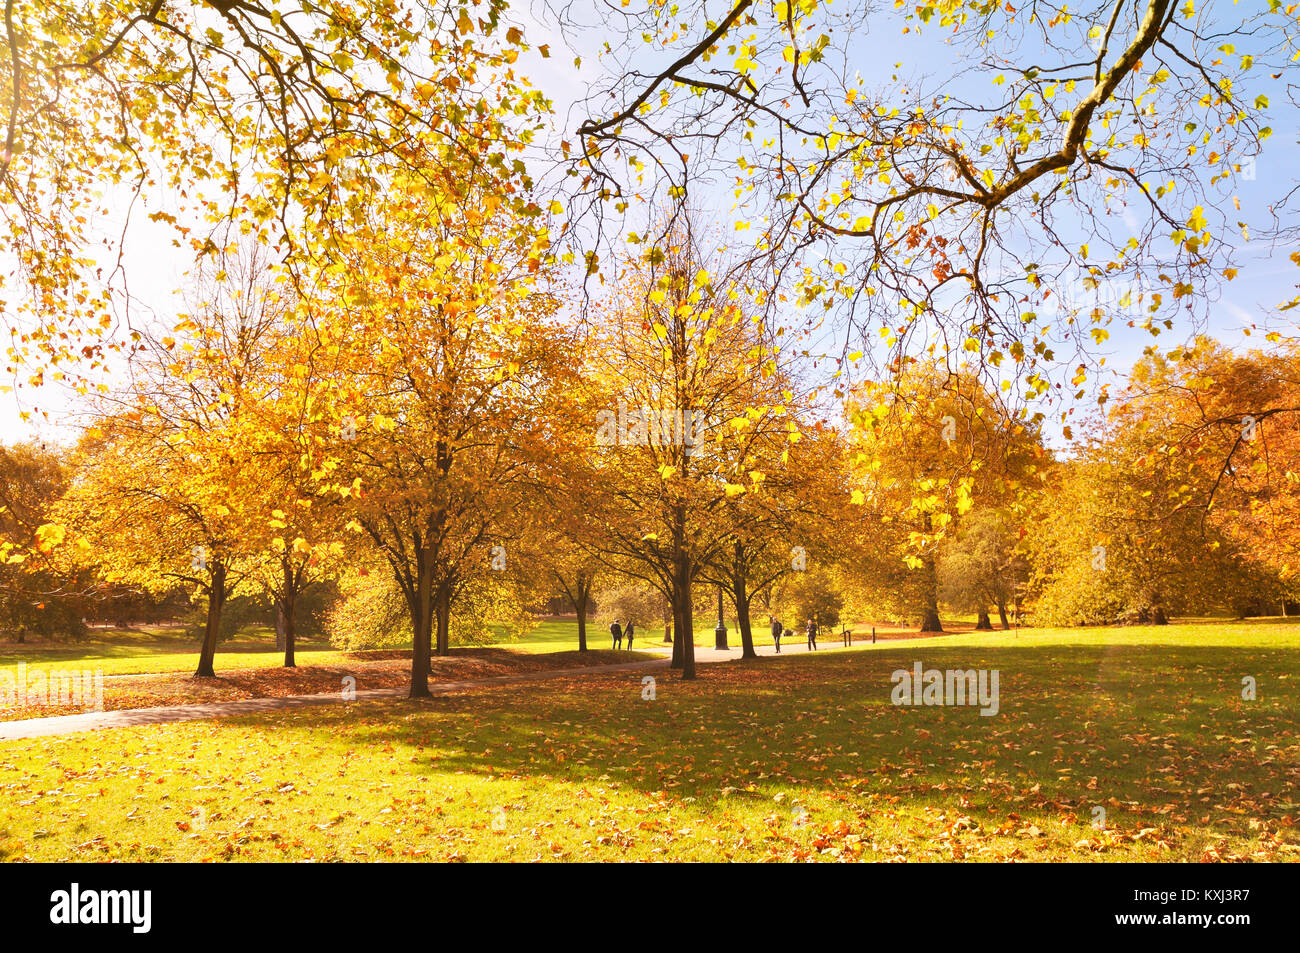 Green Park, London.  A young couple walk hand in hand amongst  colourful trees on a lovely sunny day in autumn. Stock Photo